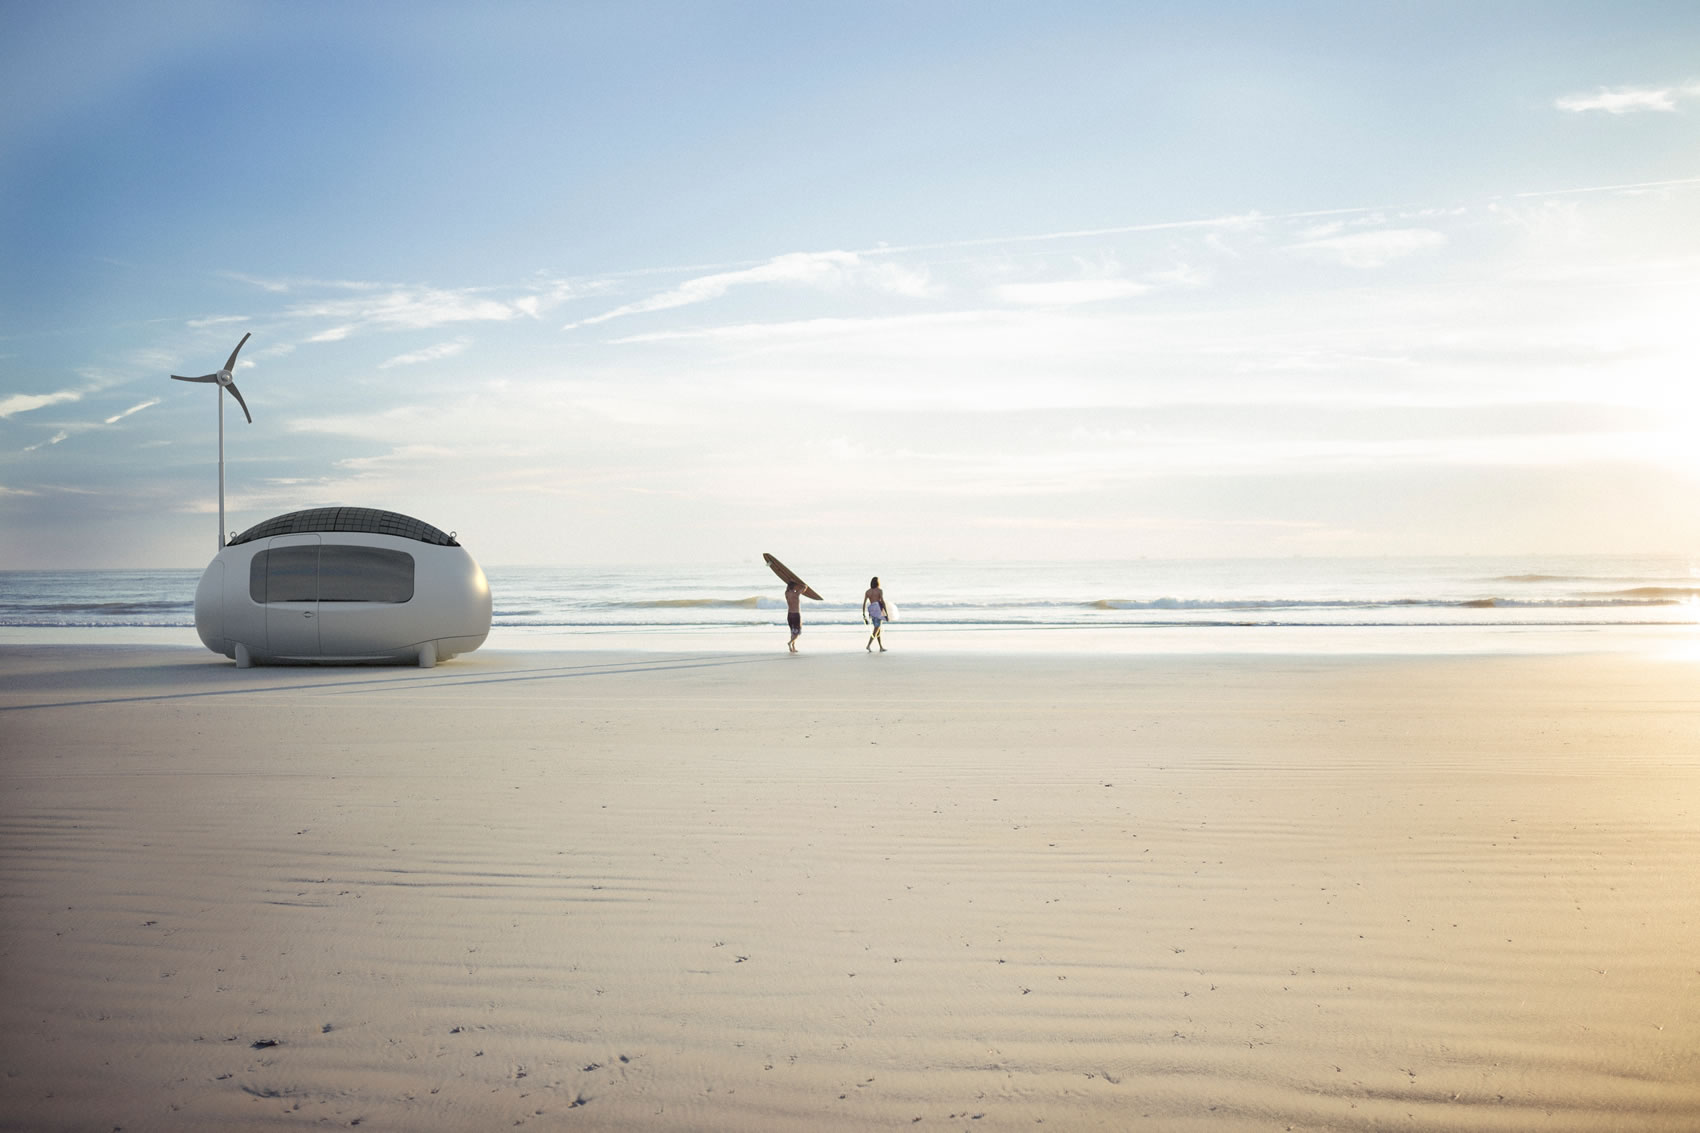 The first series of Ecocapsules ® is on the way - image credit and source: ©Ecocapsule Holding